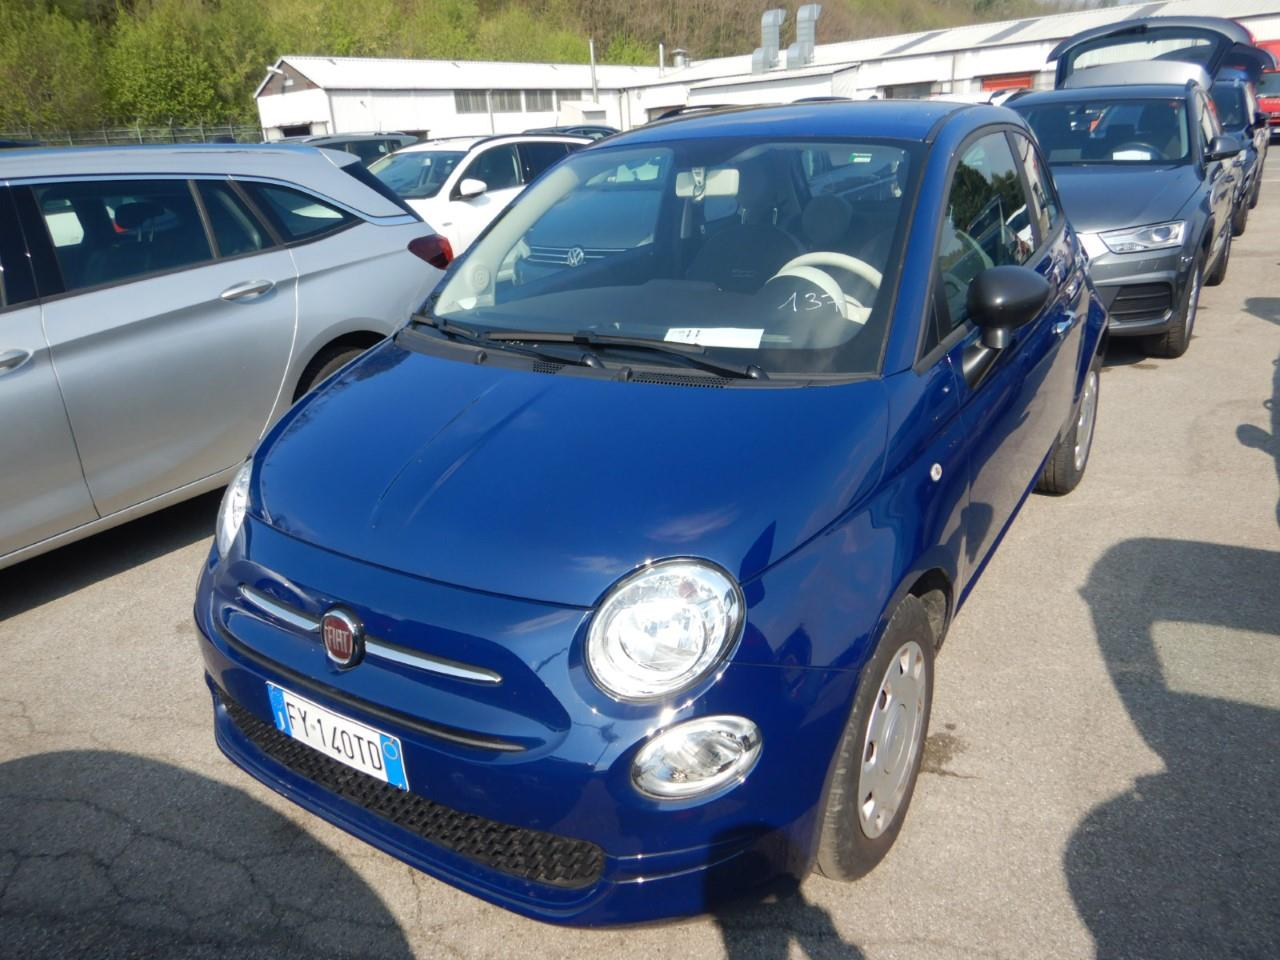 FIAT 500 7 1.2 69cv e6d-temp ss pop ( navi - bluetooth - mirror ) km 5000